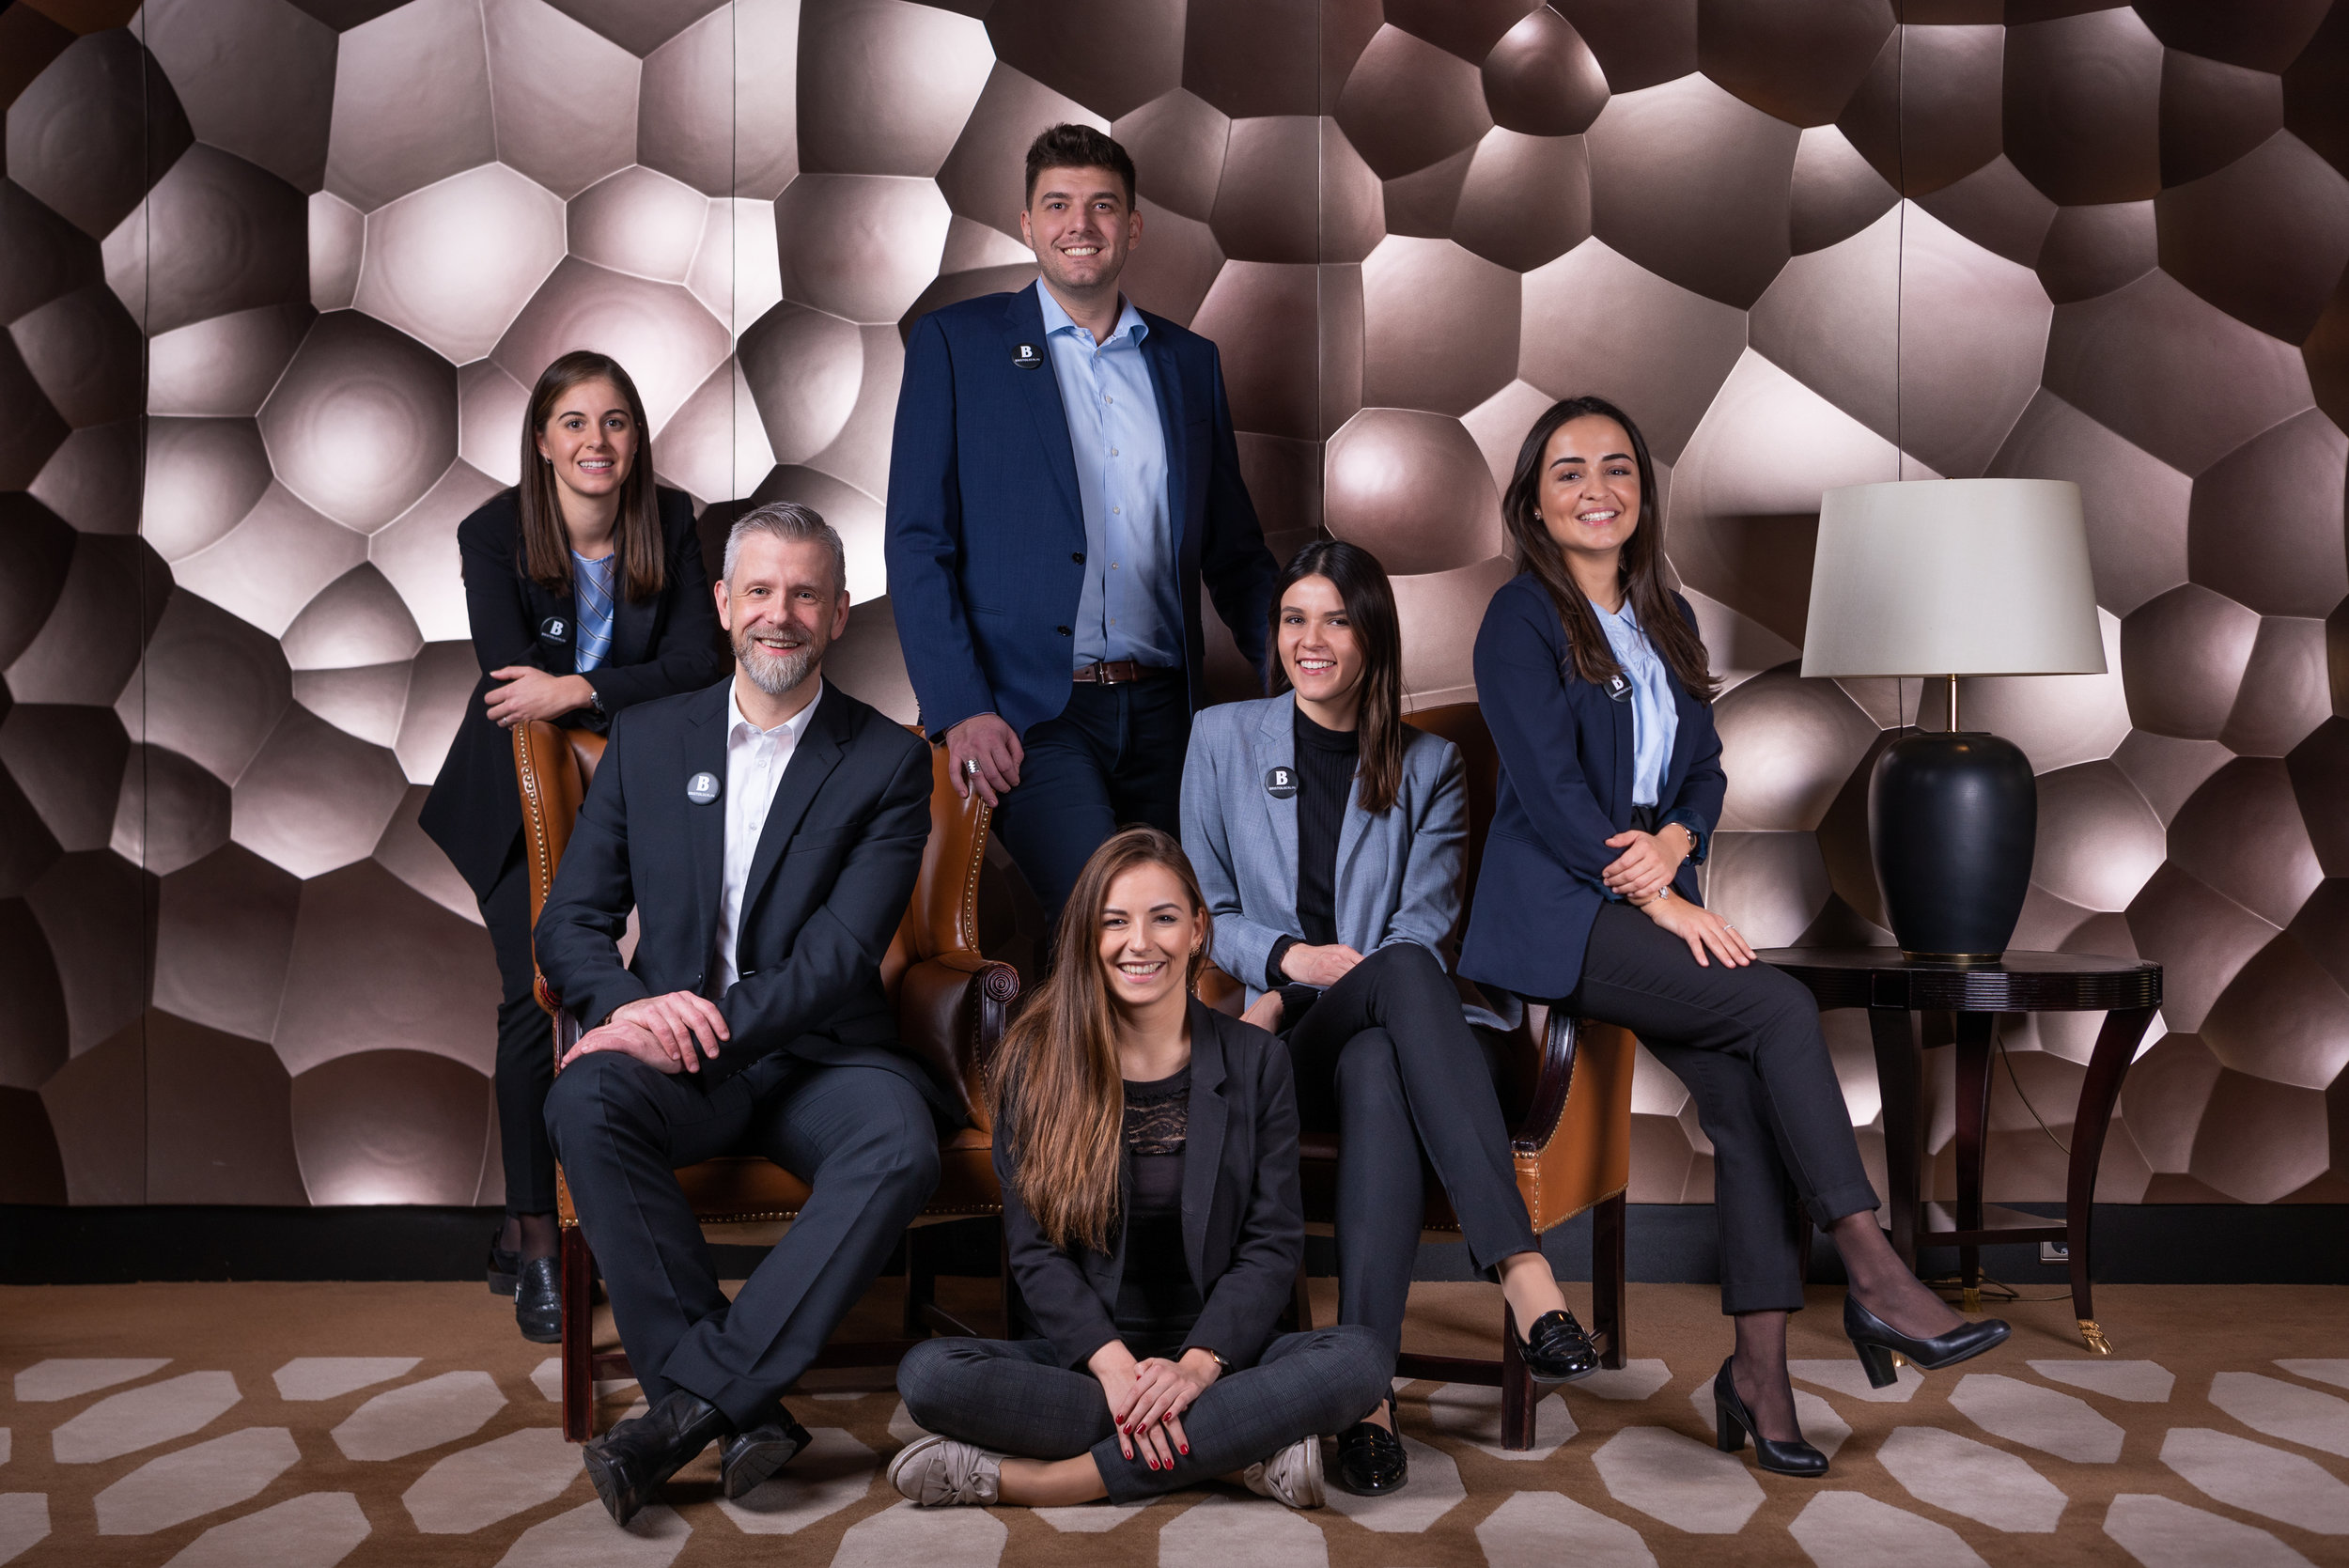 Team Portrait - Hotel Bristol Berlin